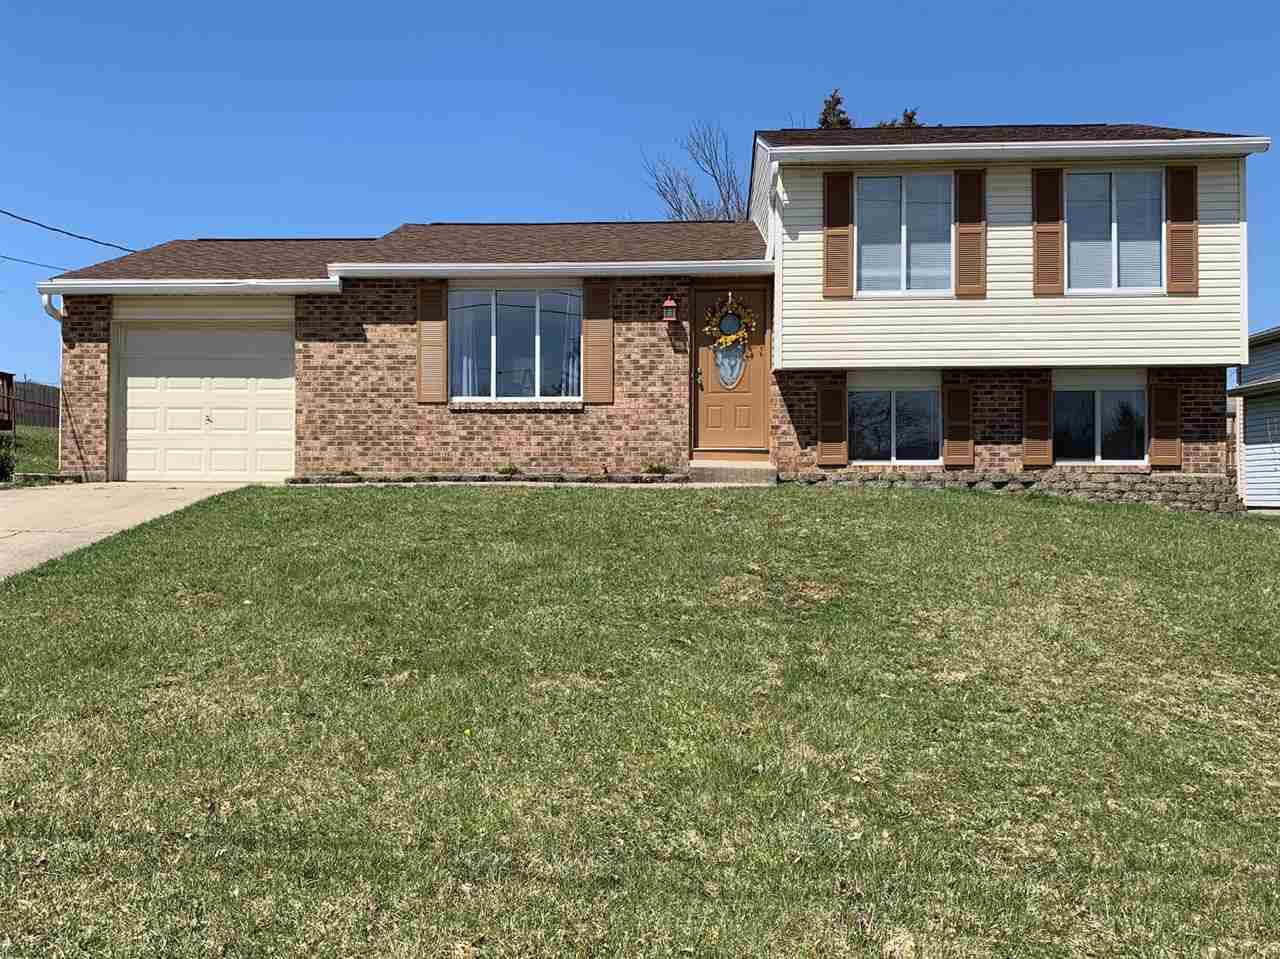 Photo 1 for 8315 Tamarack Dr Florence, KY 41042